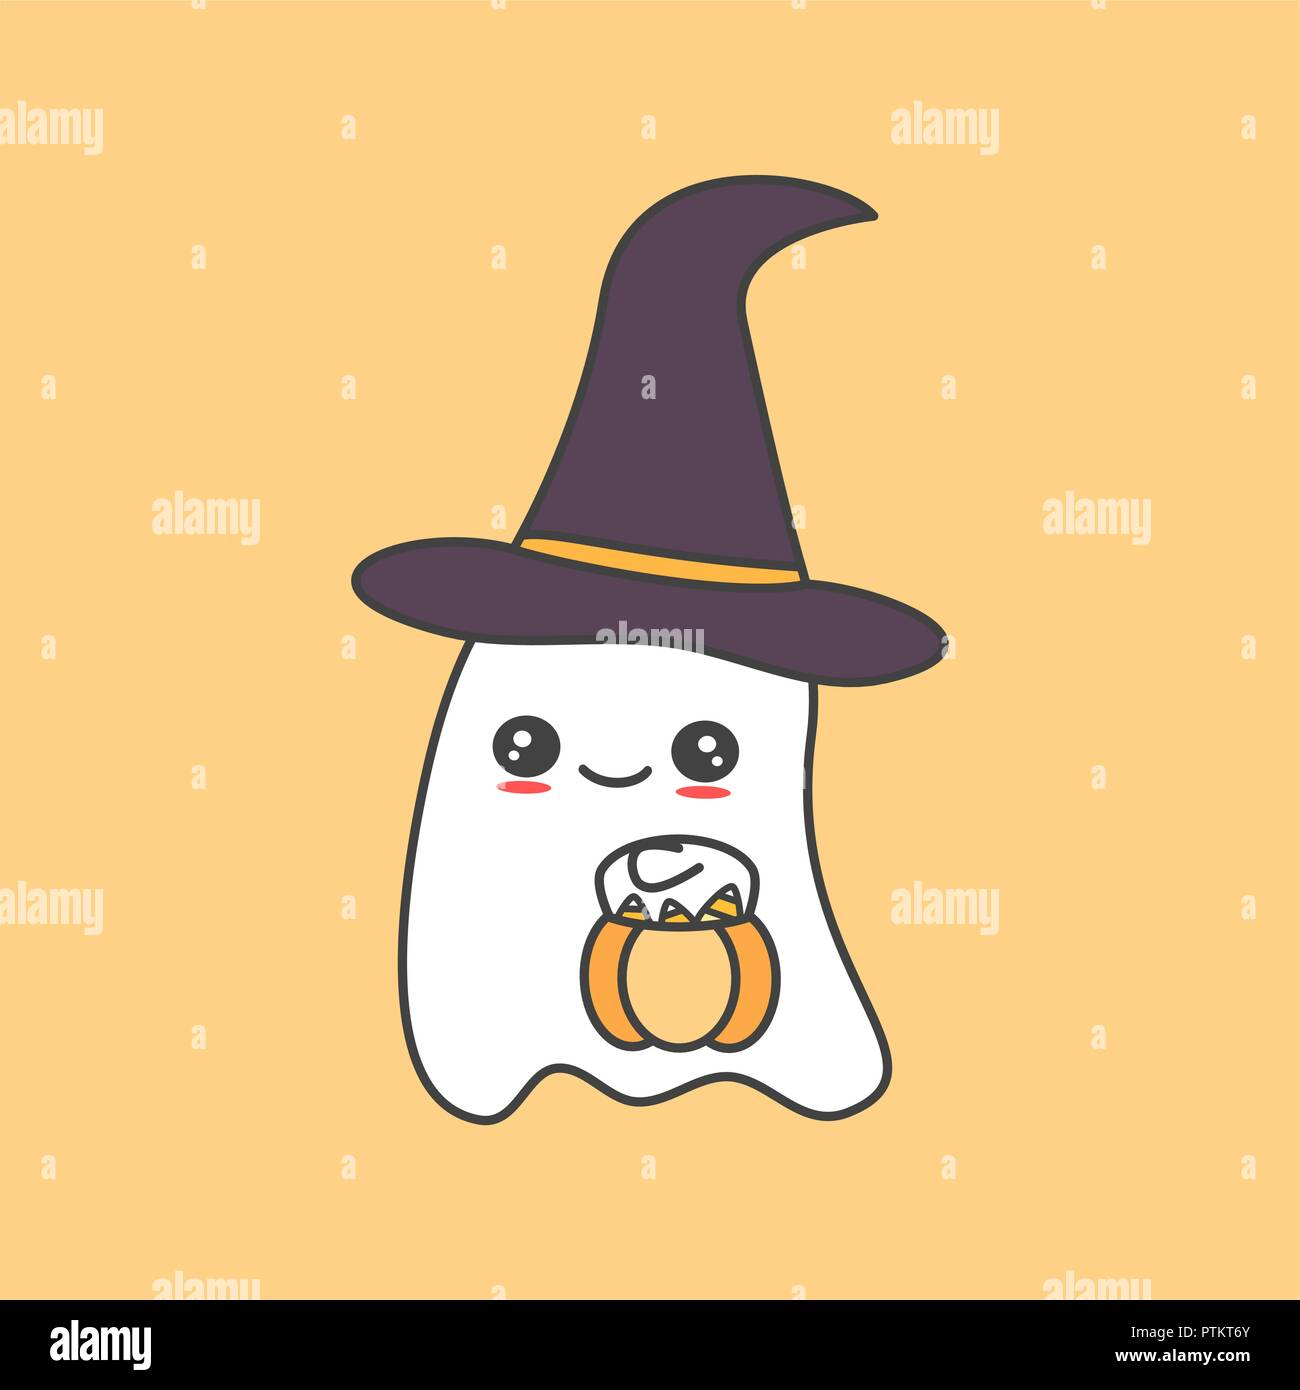 Cute Pictures Of Halloween.Cute Cartoon Ghost With Pumpkin Funny Vector Halloween Illustration Stock Vector Image Art Alamy